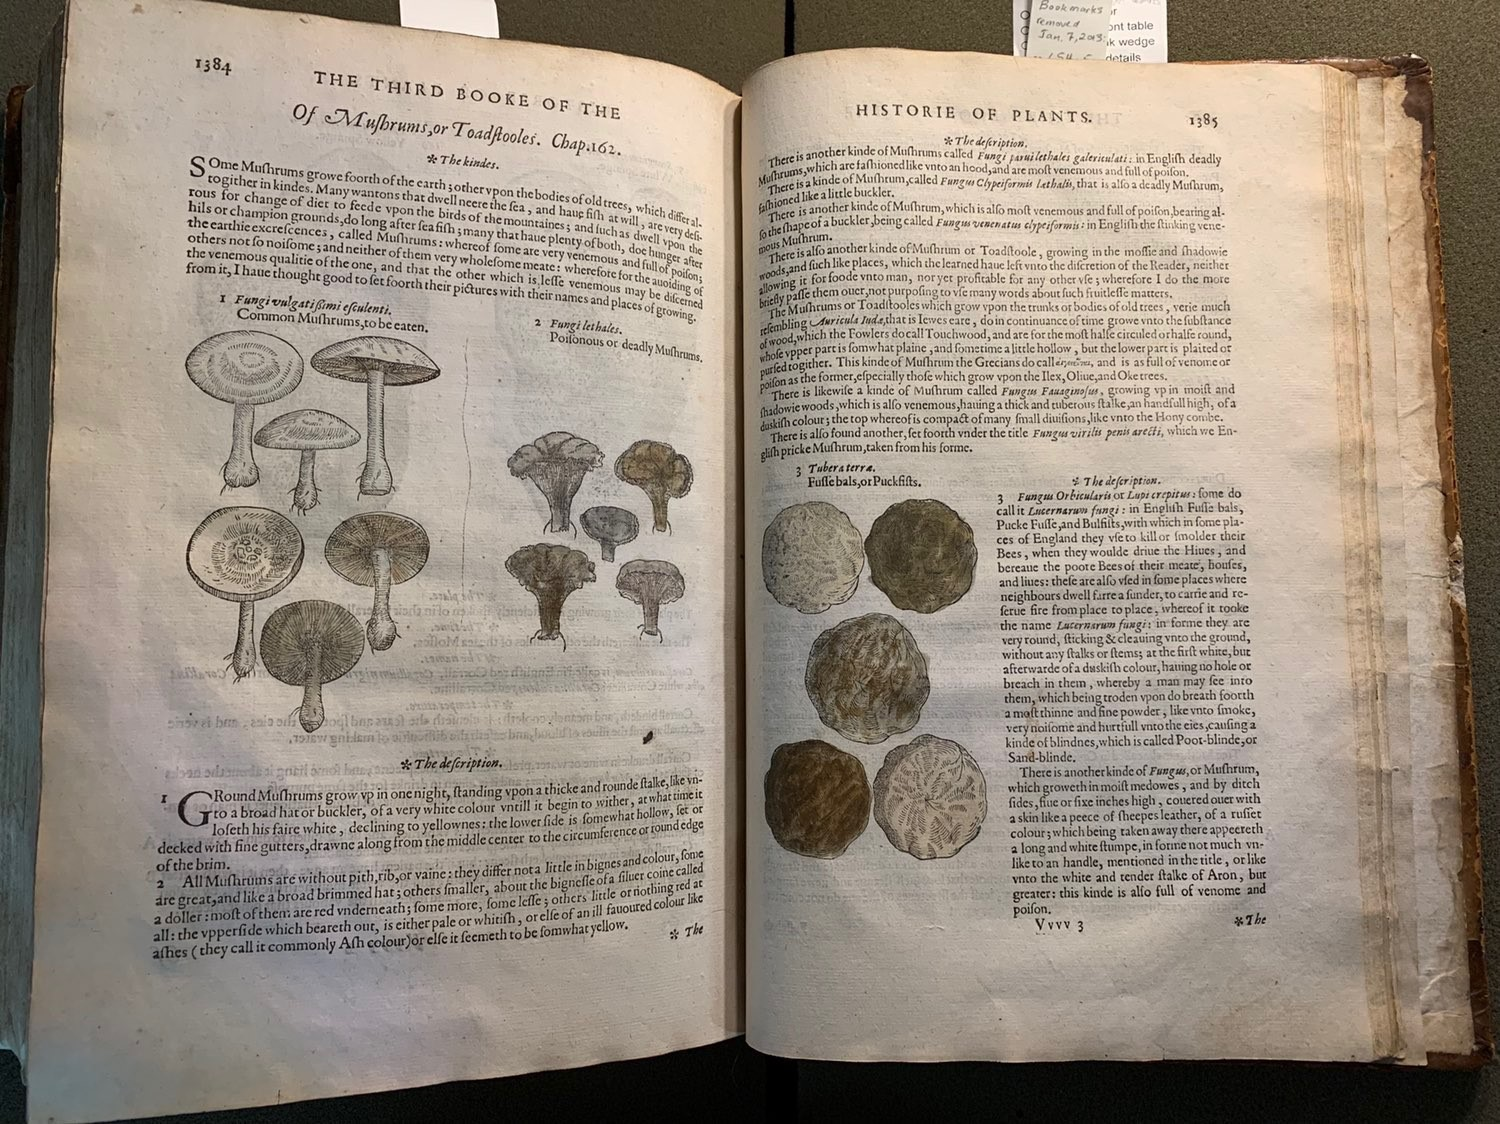 Illustrations of edible and poisonous mushrooms from a 1597 herbal